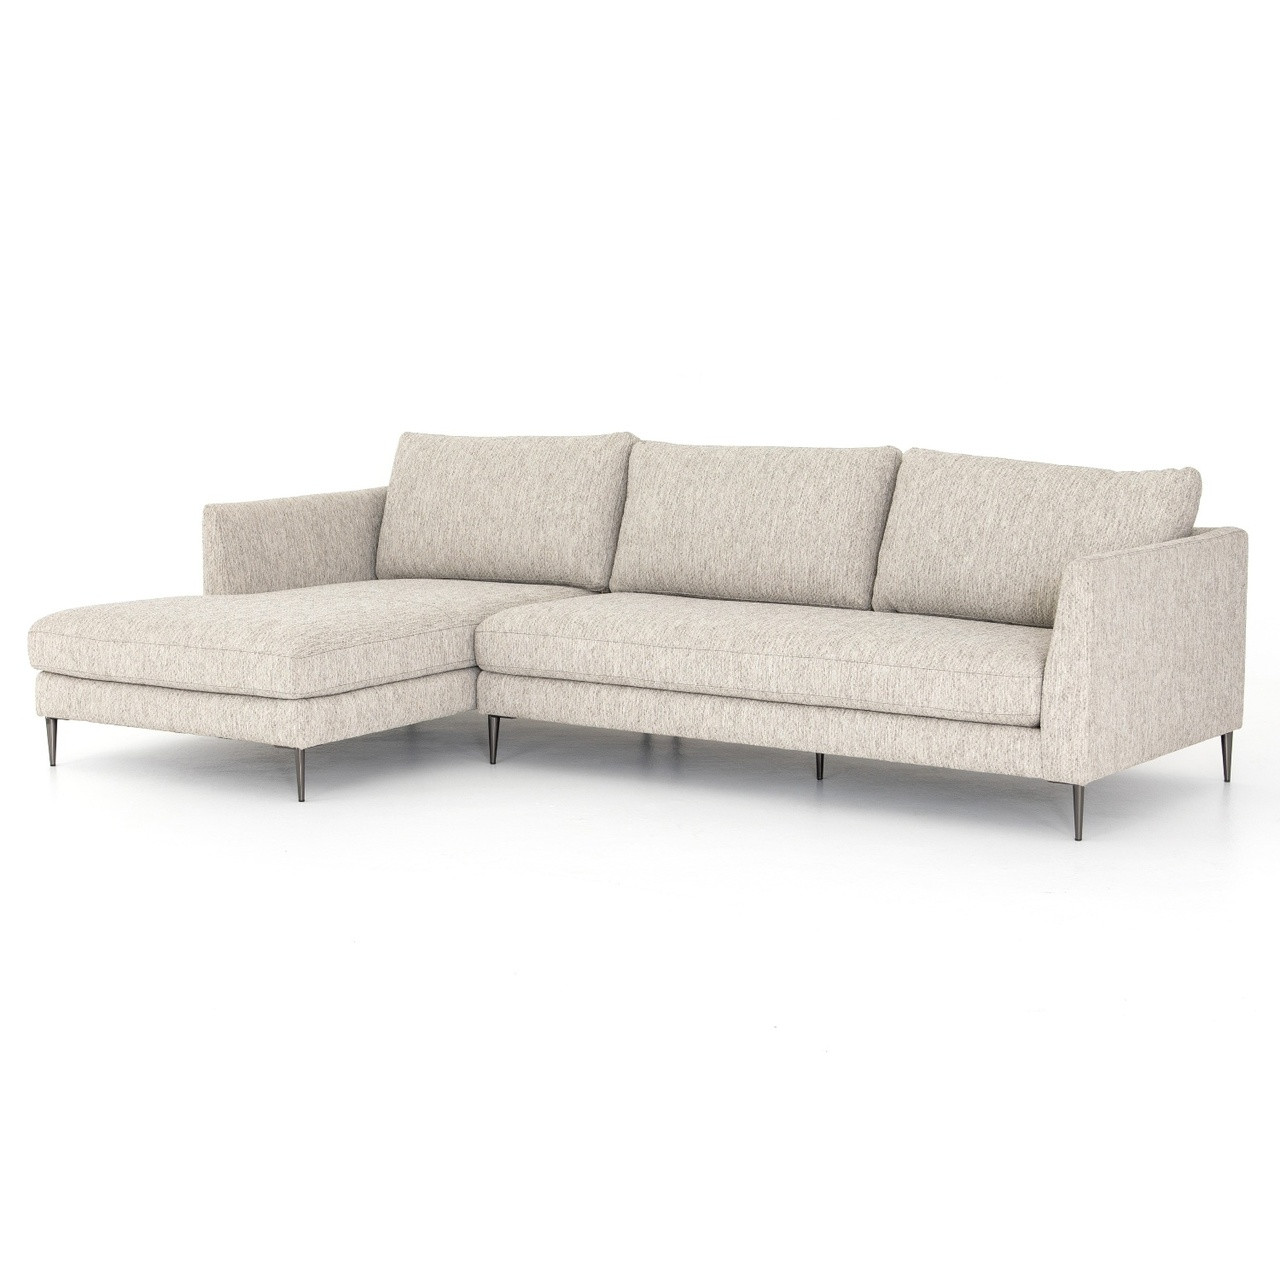 Kailor Modern Sectional Sofa With Left Chaise Zin Home